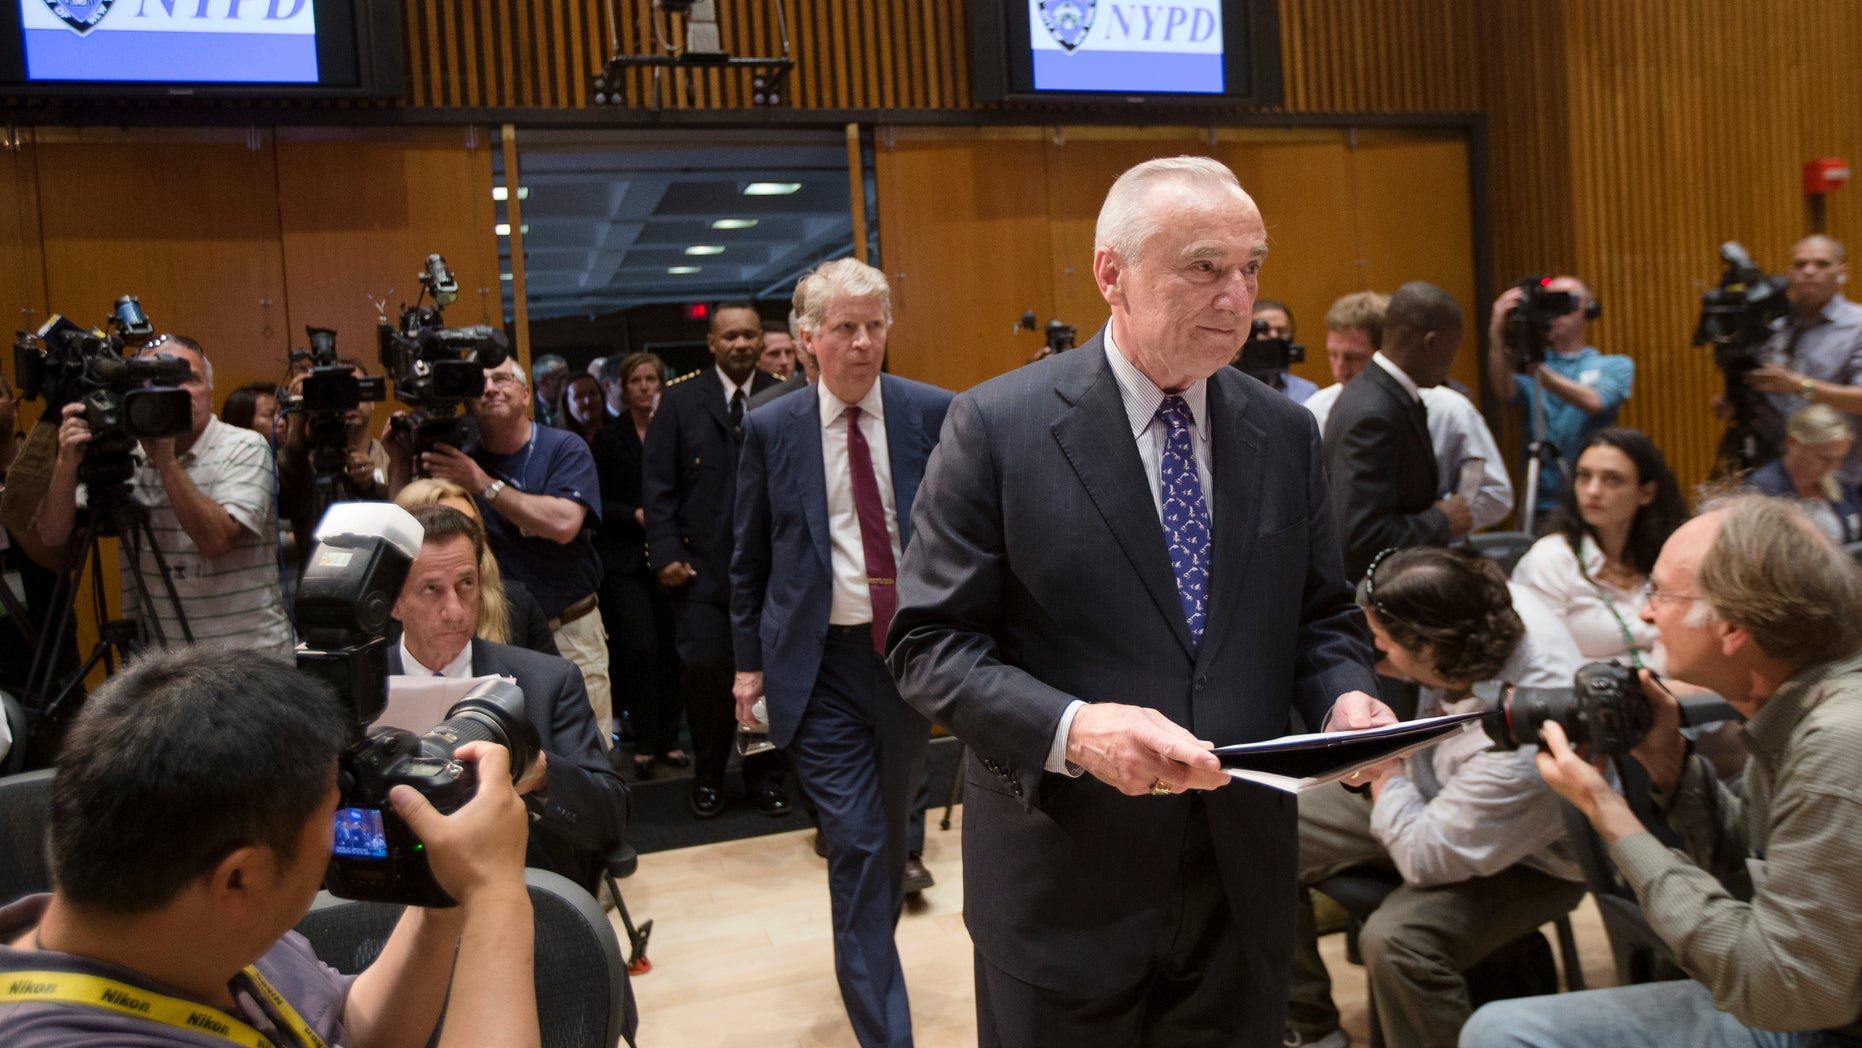 New York City police commissioner William Bratton enter a news conference Wednesday, June 4, 2014.